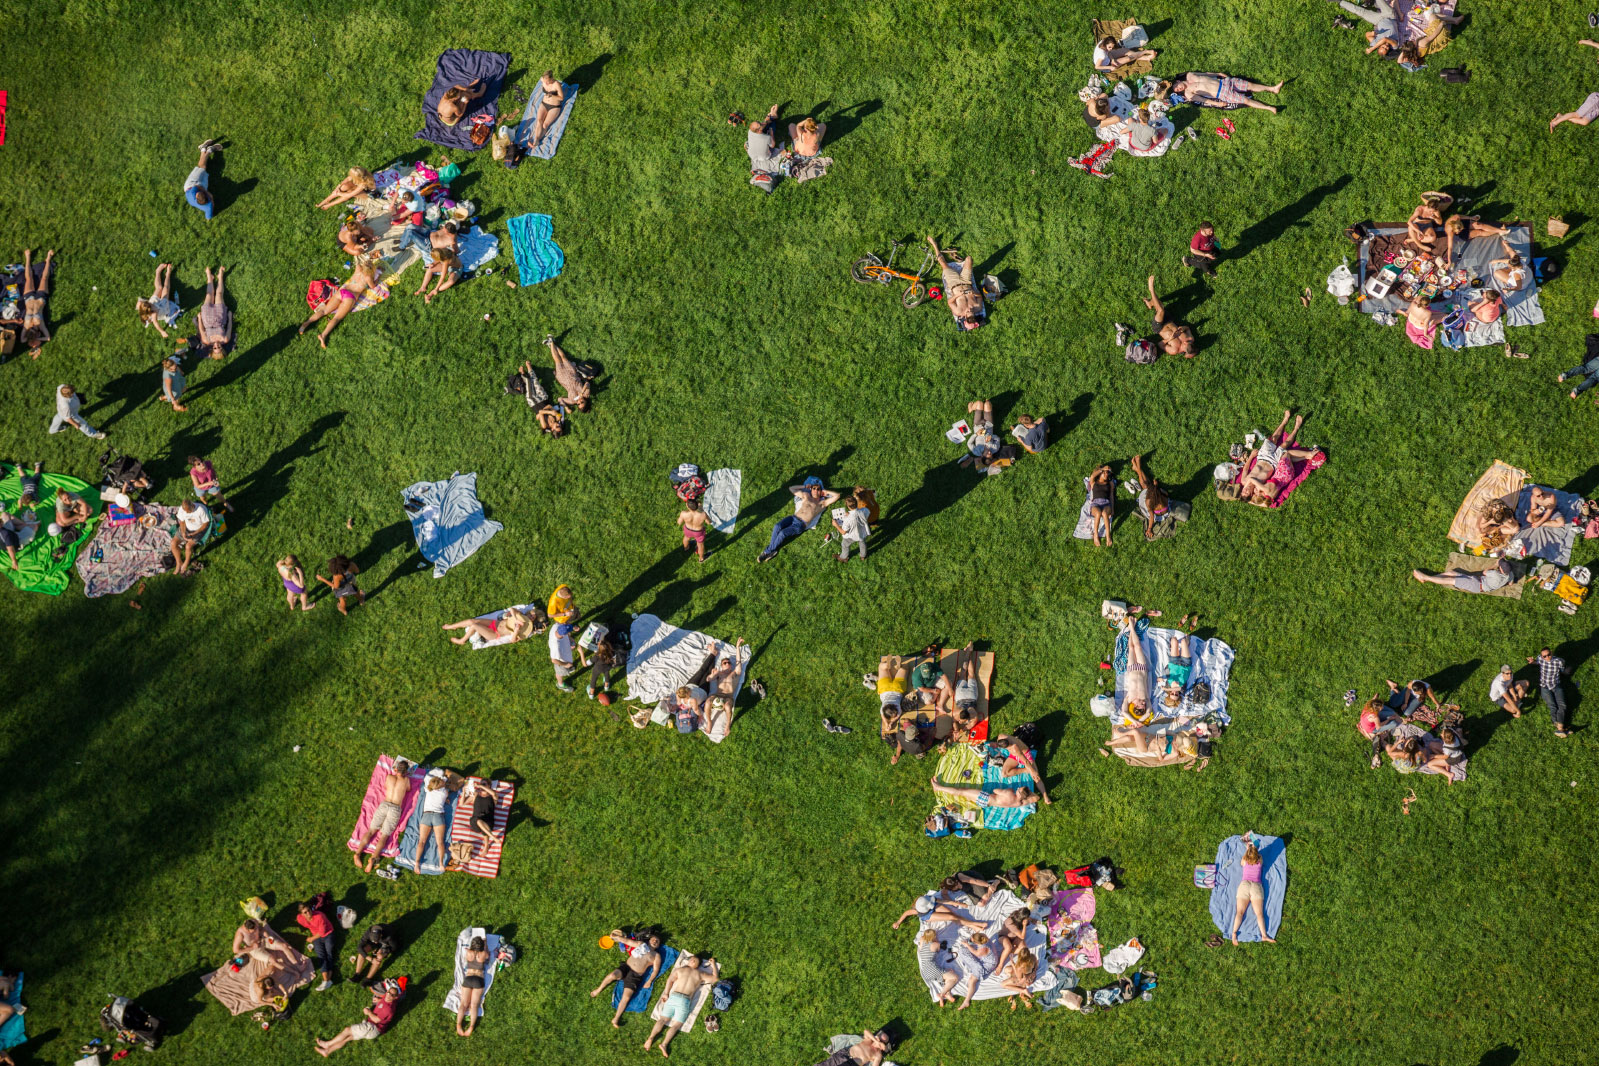 Sunbathers and picnickers in the area between the pathway that encircles Central Park's Great Lawn, on a warm afternoon of spring.